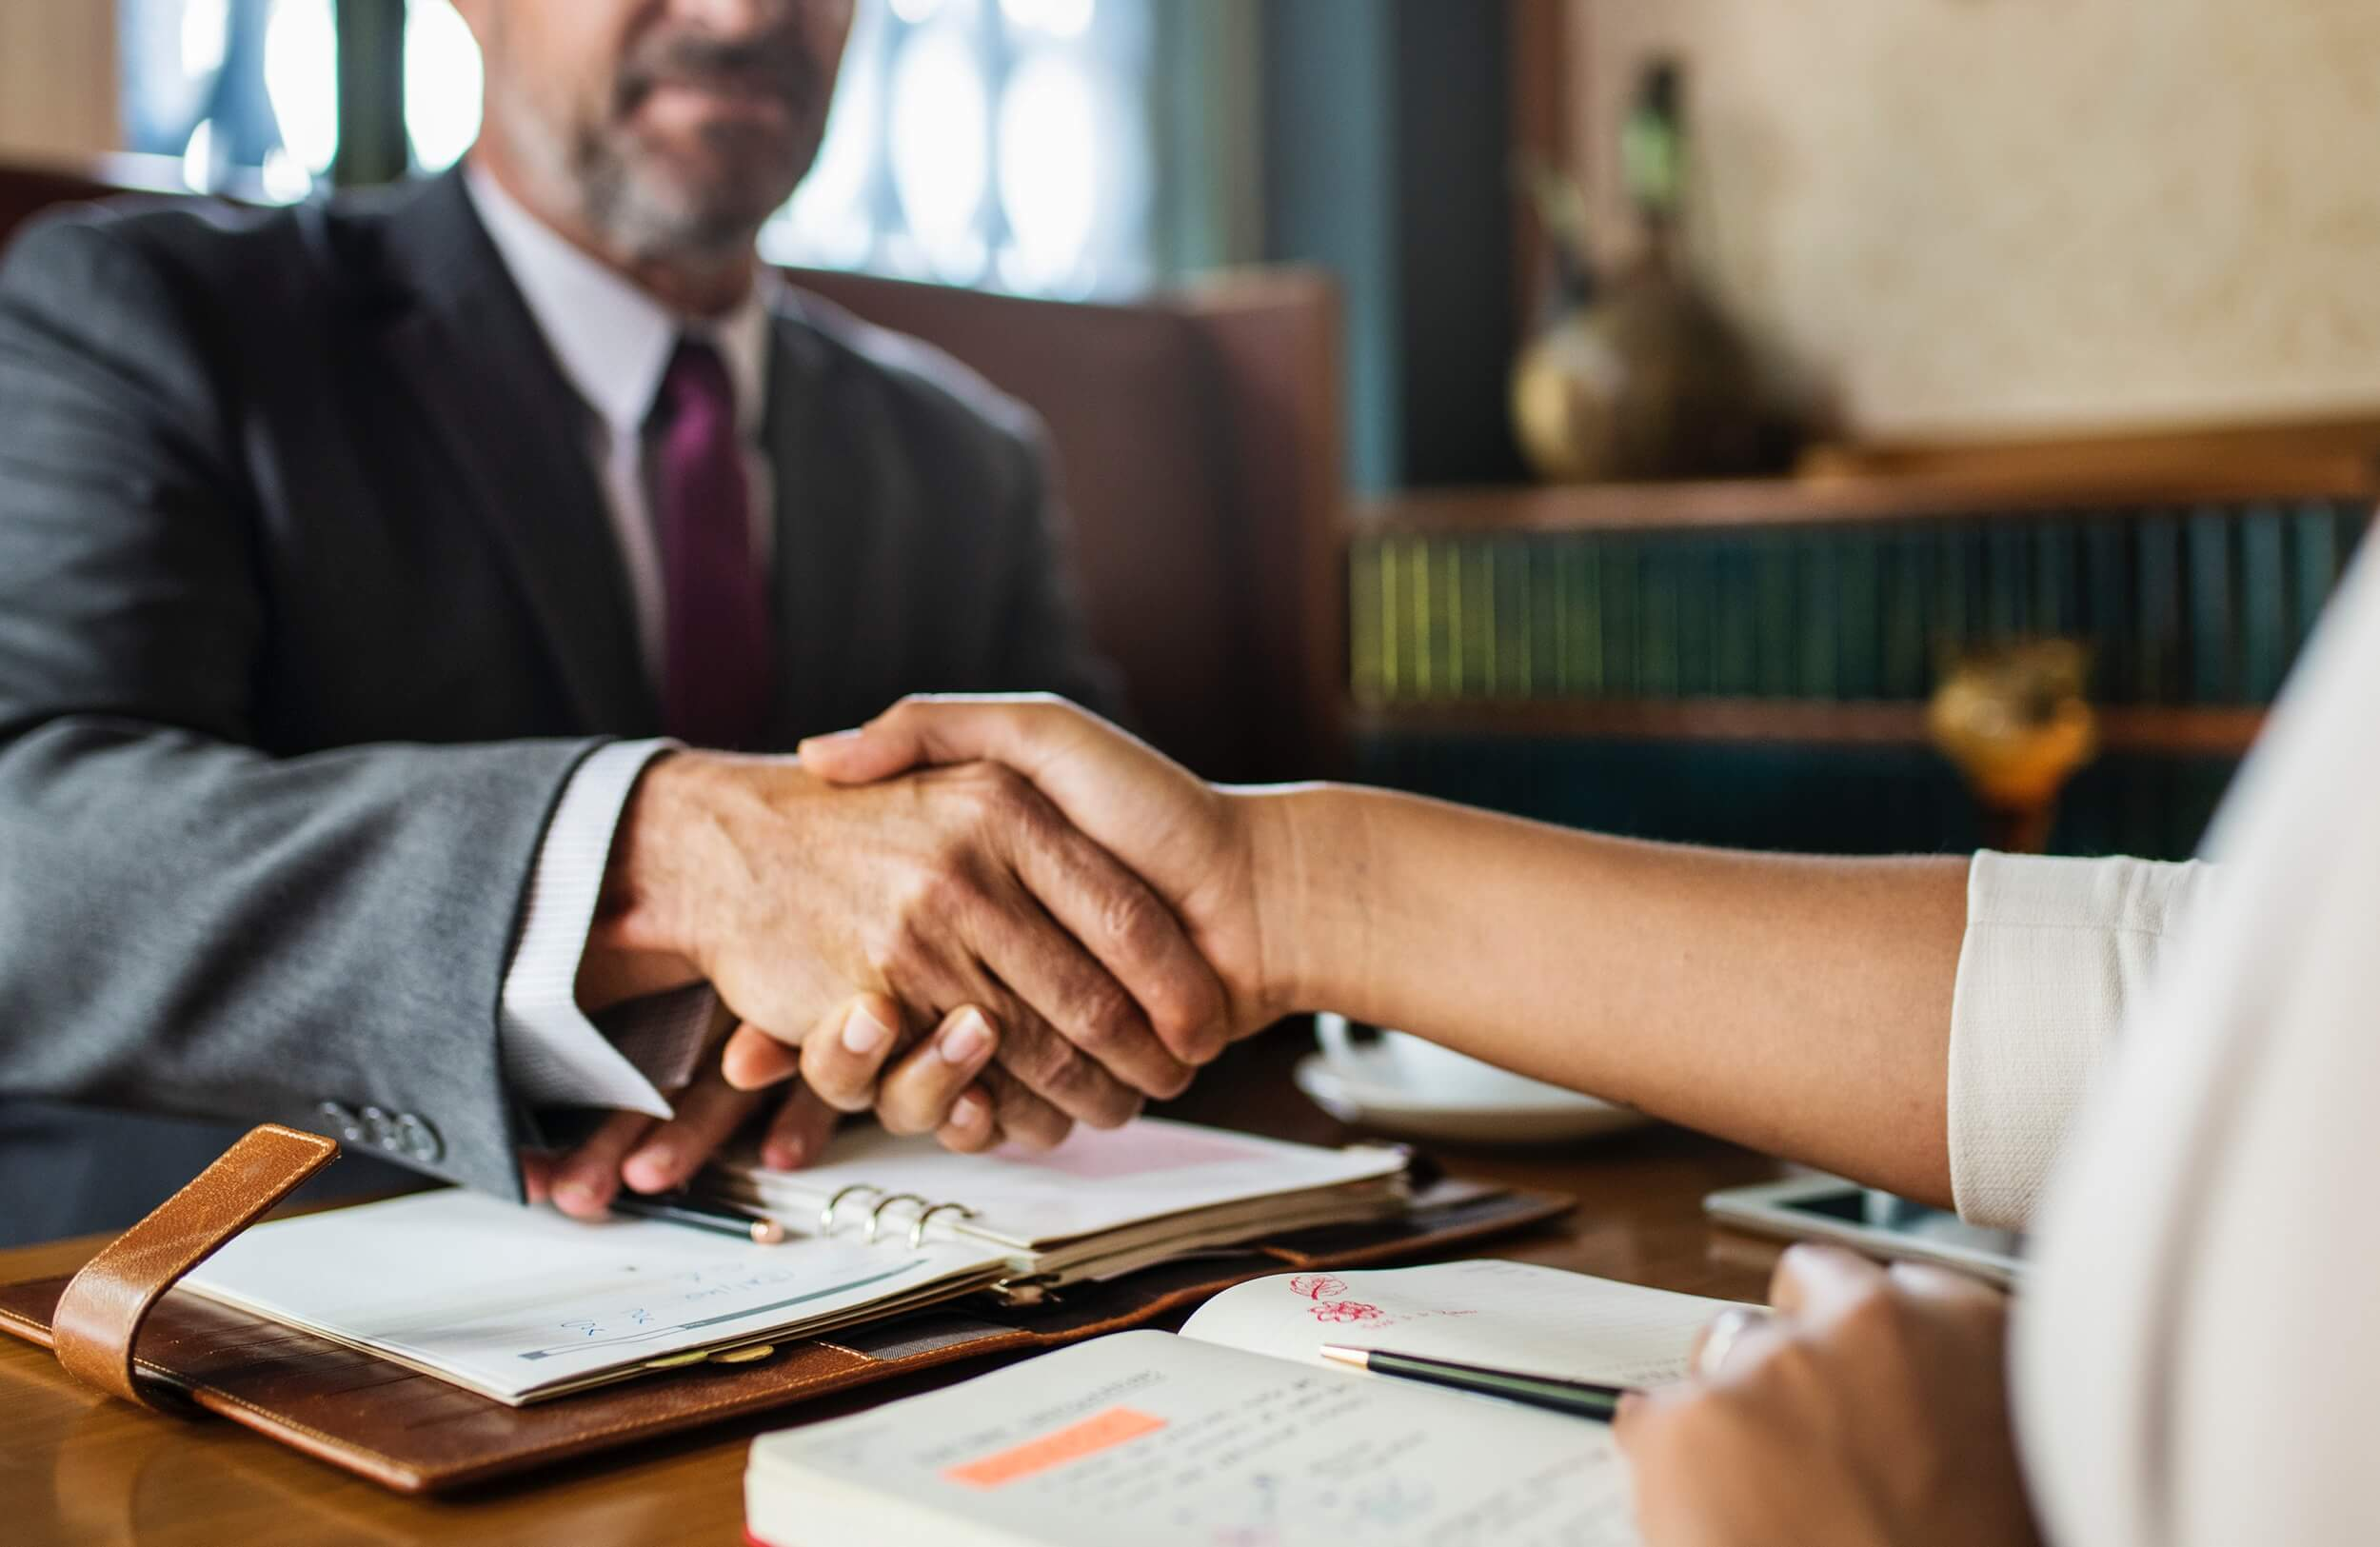 5 Resume Rules That Would to Land Interviews